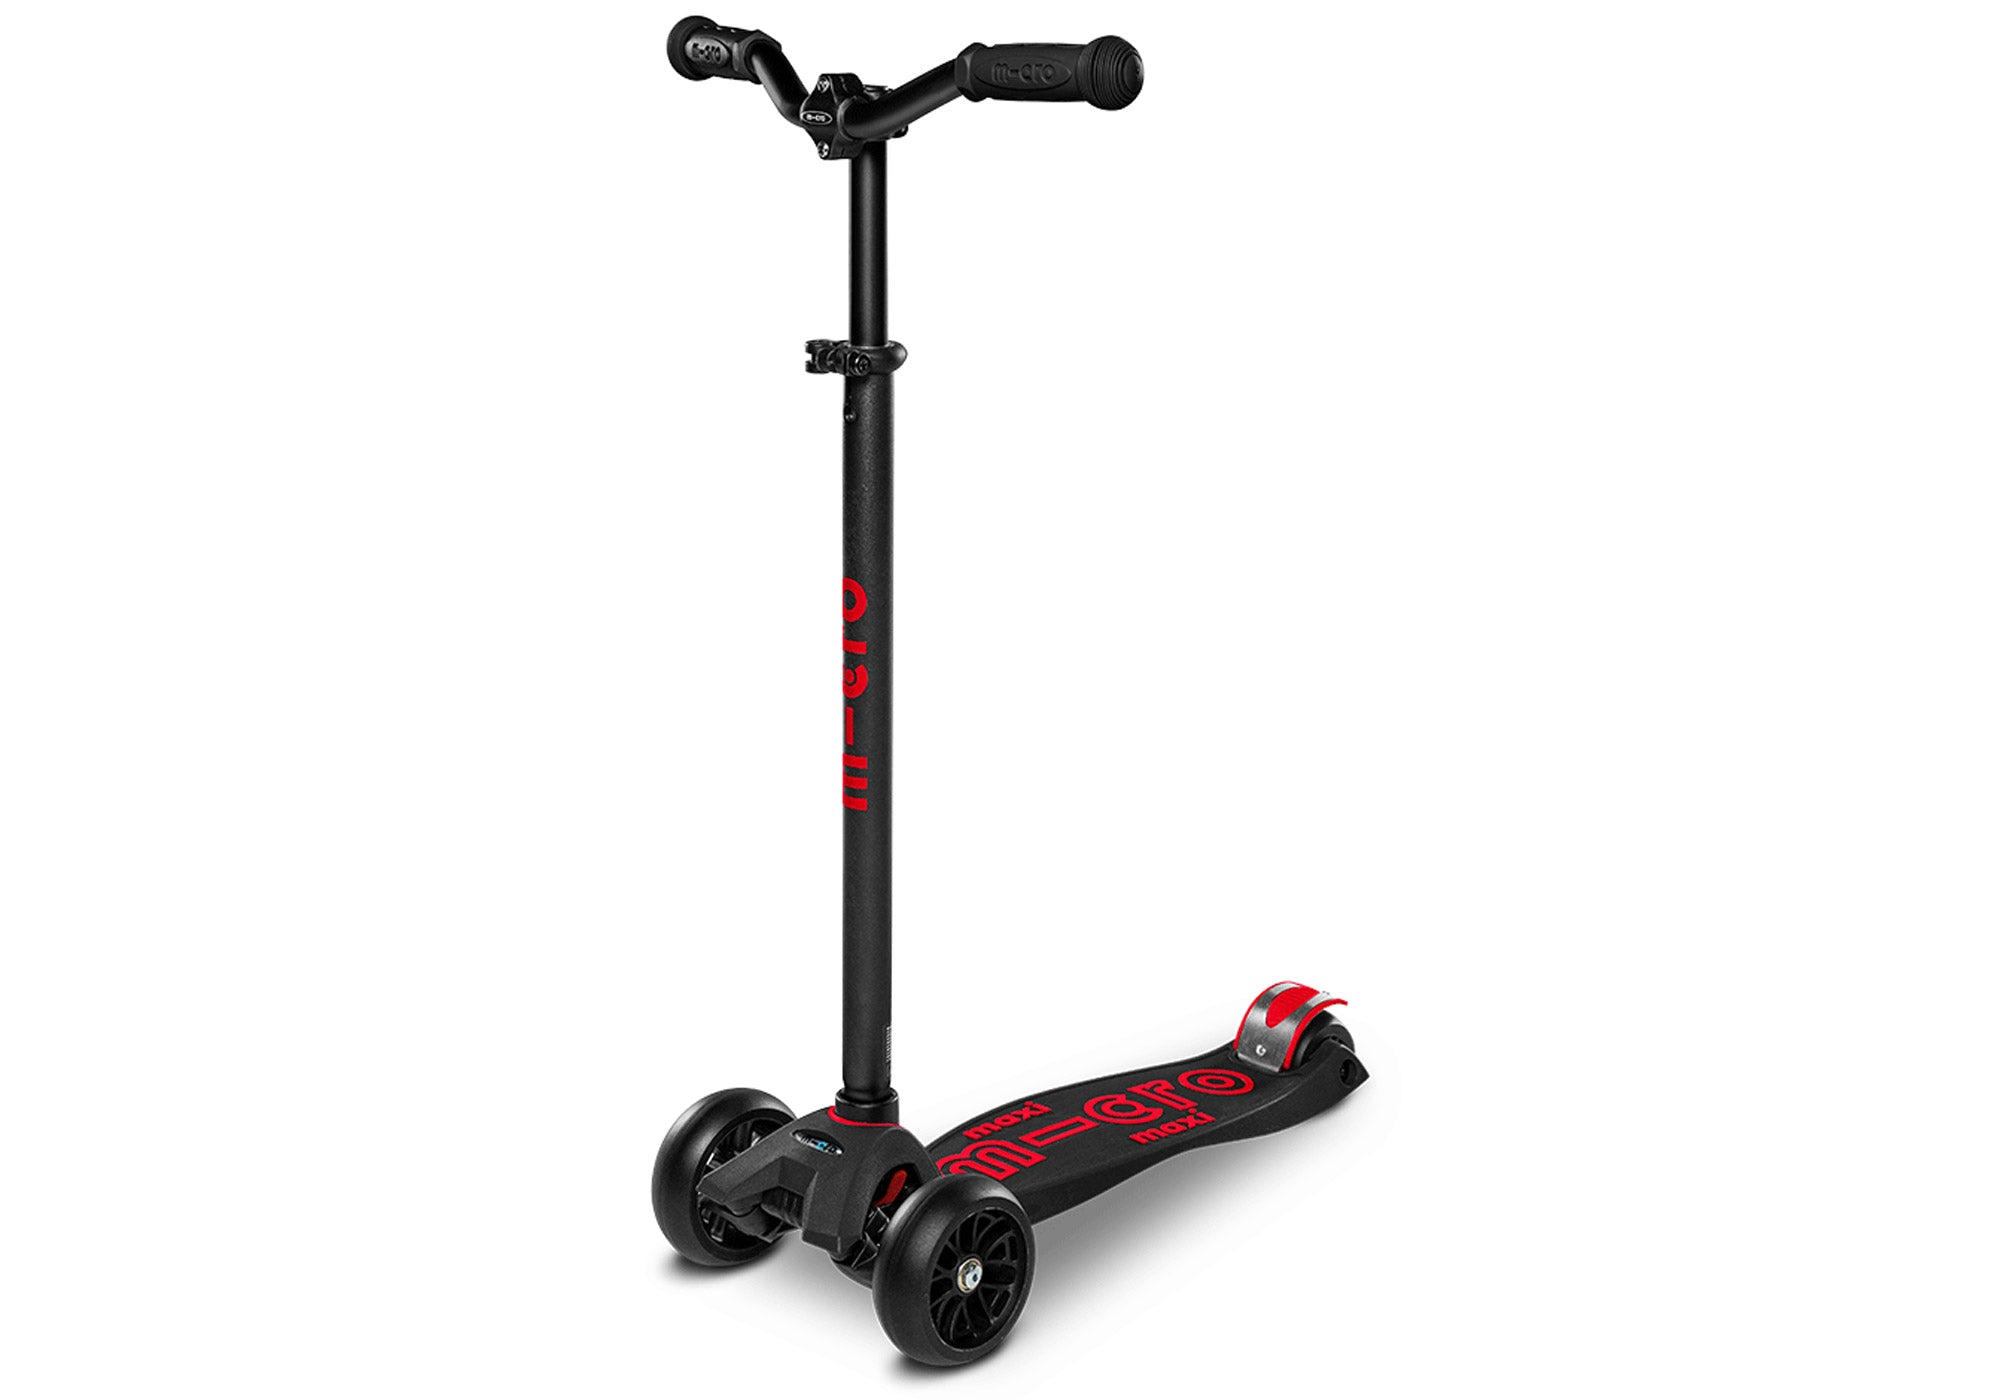 Micro Maxi Micro Deluxe Pro Scooter, Black/Red buy online at Woolys Wheels Sydney